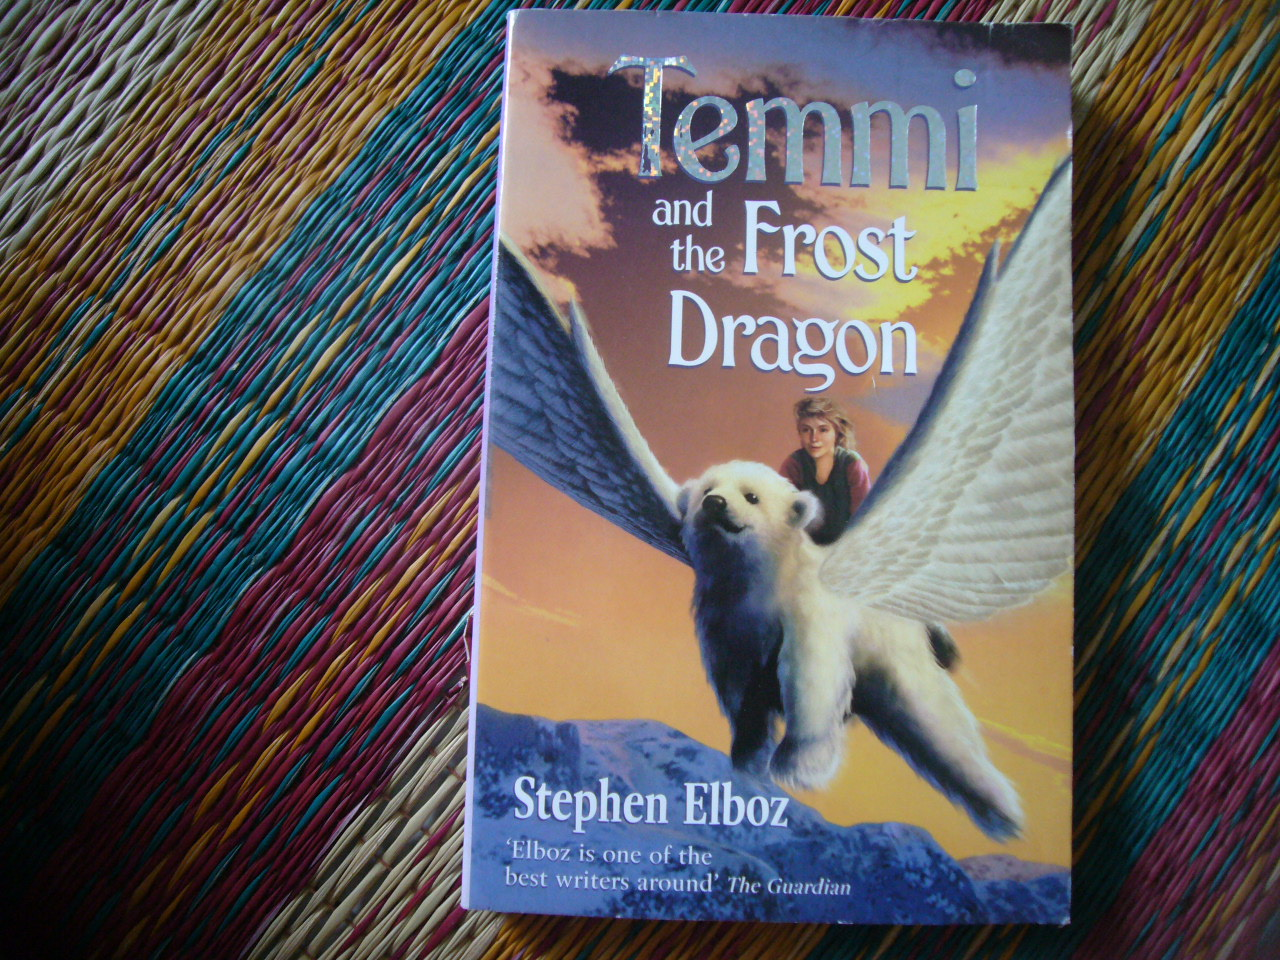 Temmi and the Frost Dragon